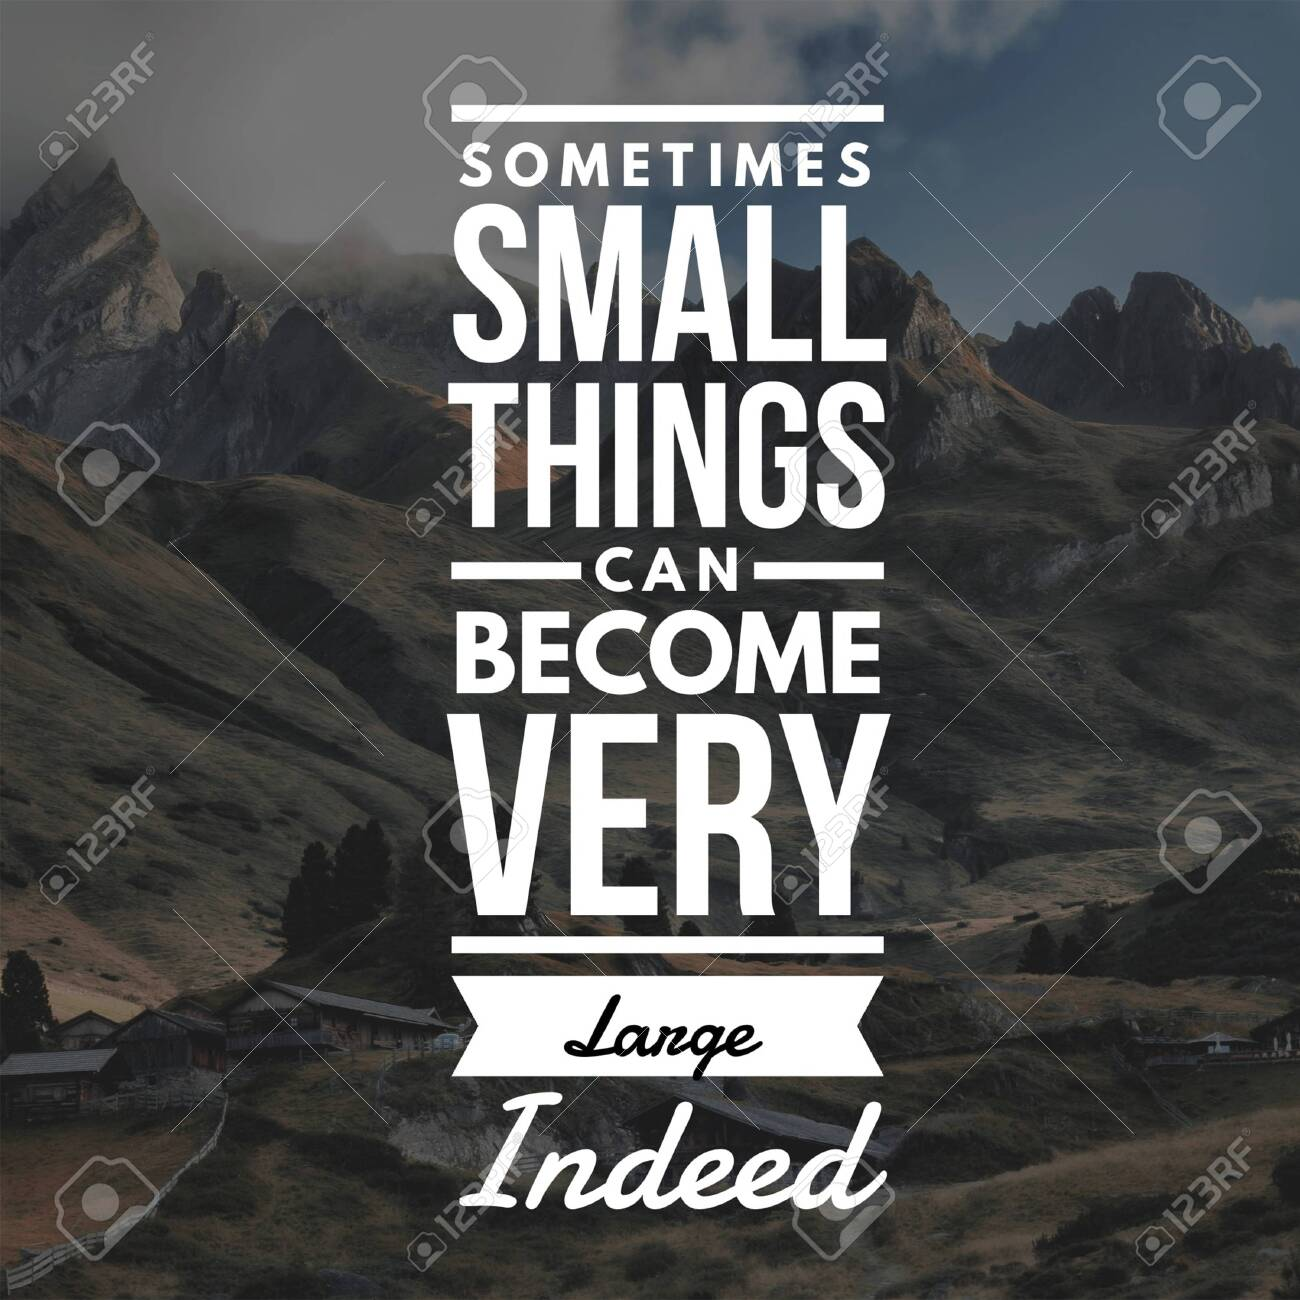 Inspirational Quotes Sometimes small things can become very large..